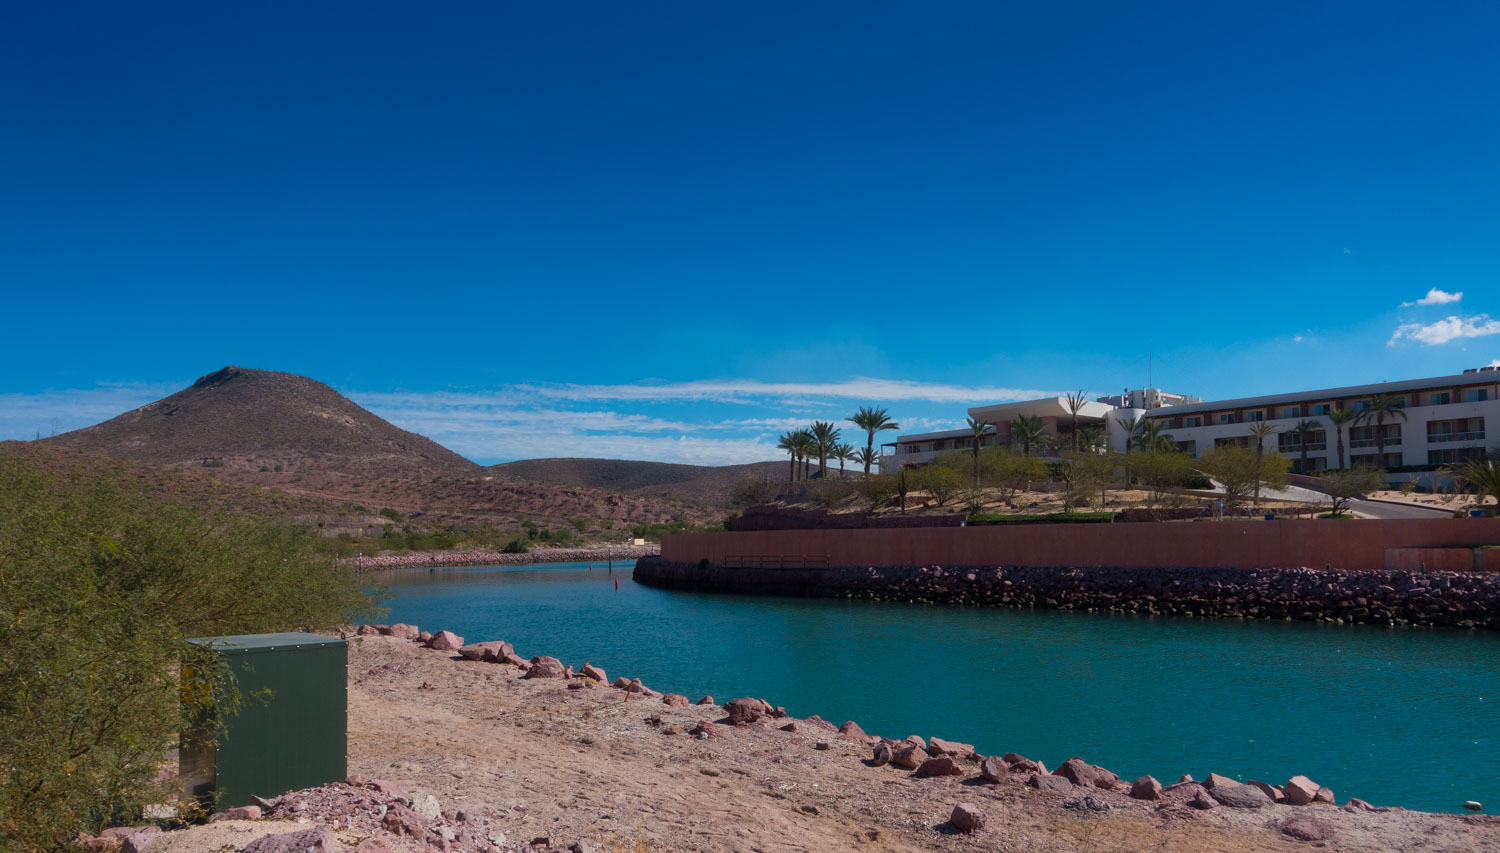 The narrow channel, blasted from the desert that leads to the inner harbor at Costa Baja Marina.